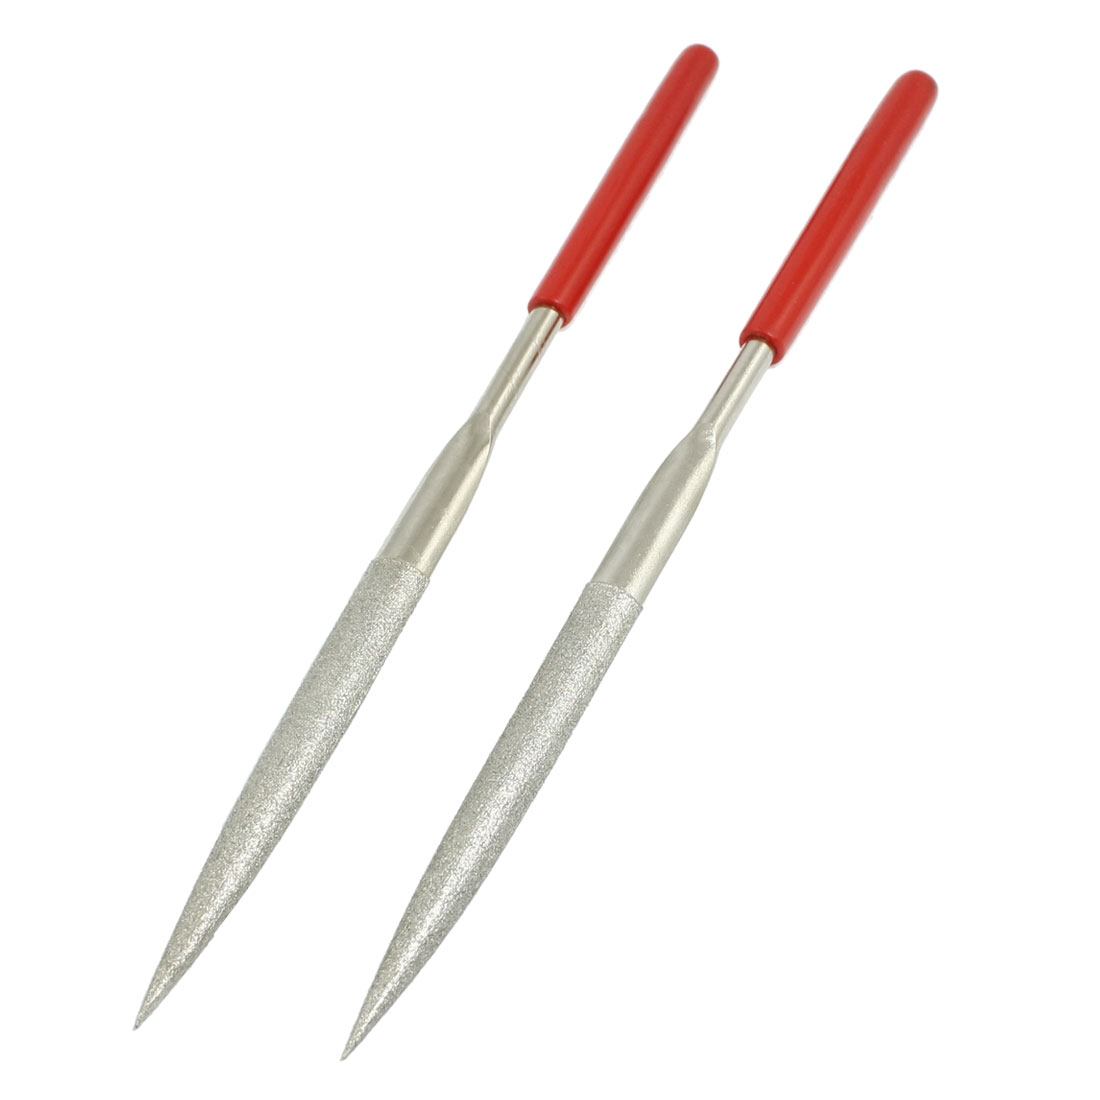 180mm Long Craft Making Hand Tool Half Round Needle Files 2 Pcs